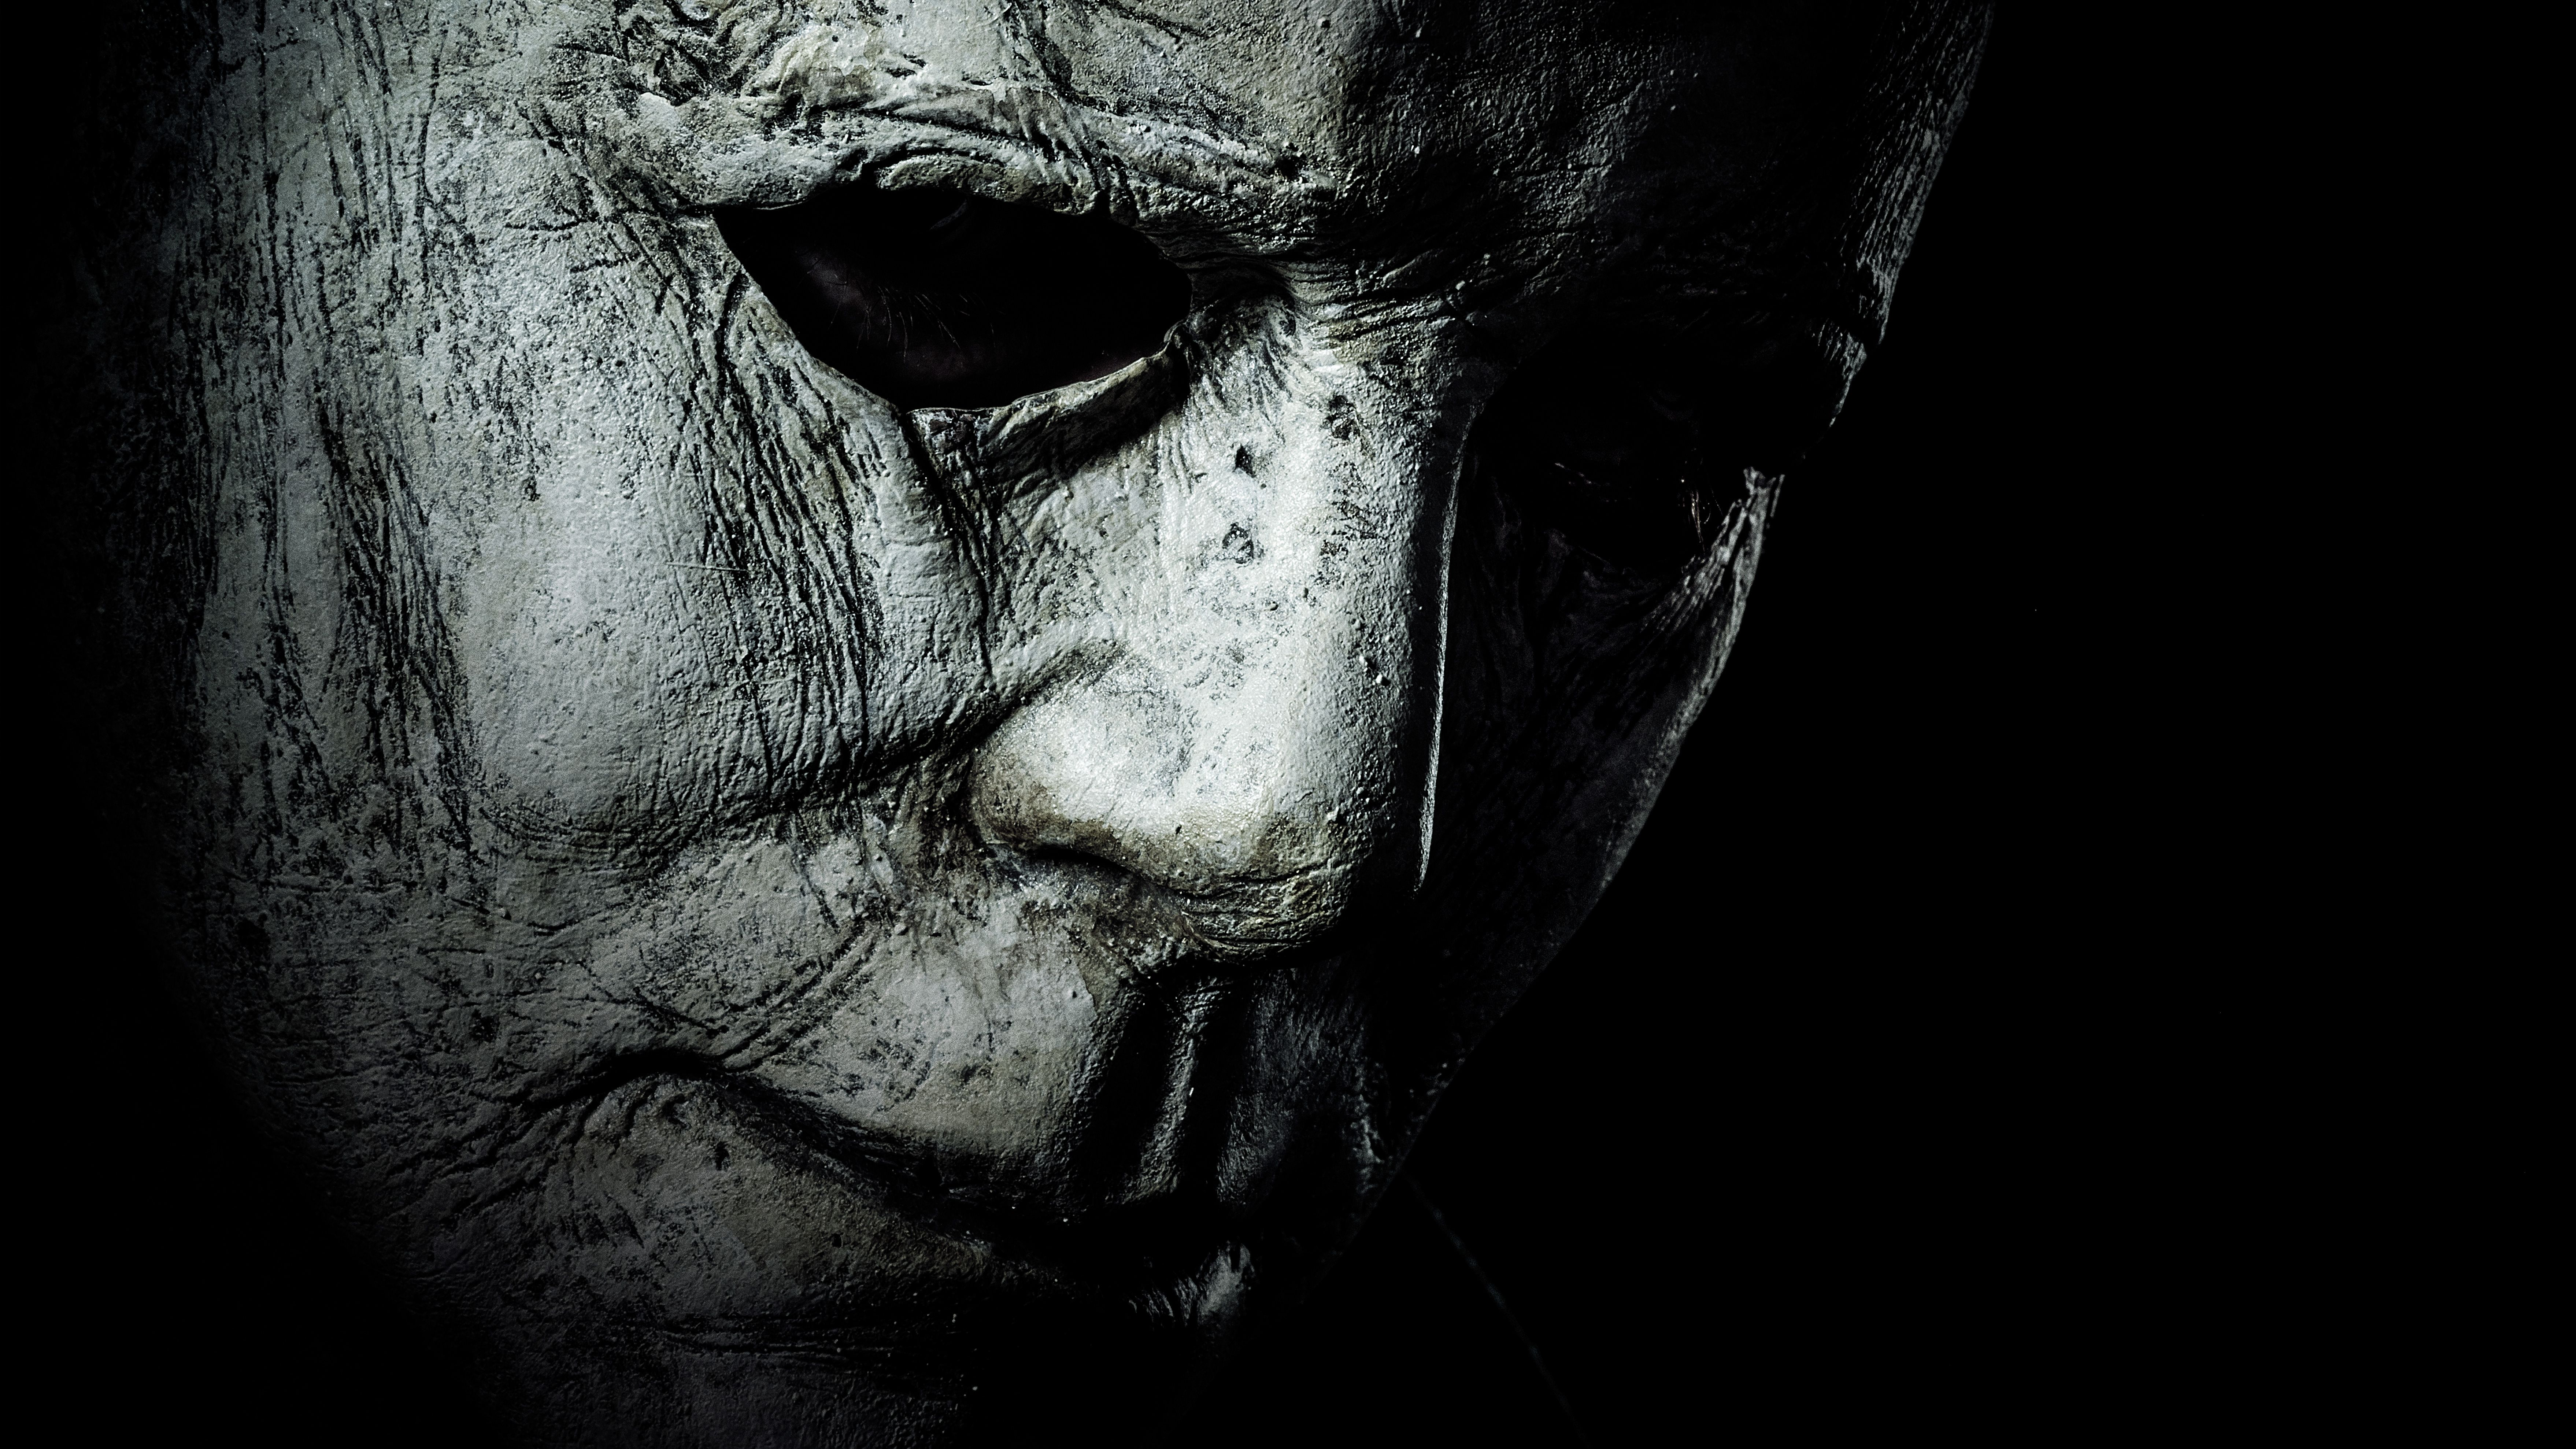 7032x3955 Halloween Movie 2018 8k, HD Movies, 4k Wallpapers, Images ...